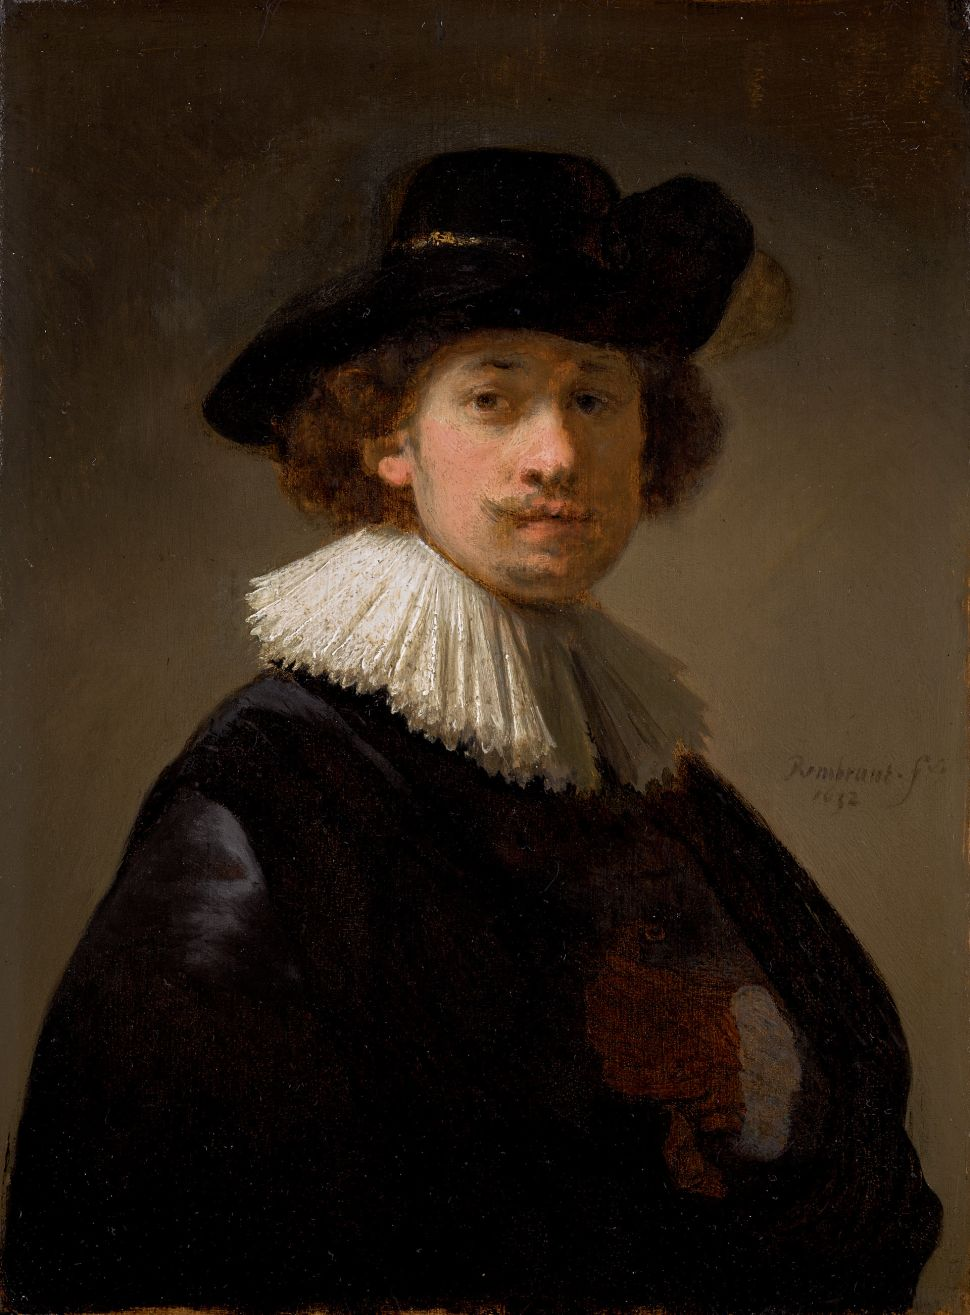 Rembrandt May Have Painted This Self-Portrait as a Gift For His Wife